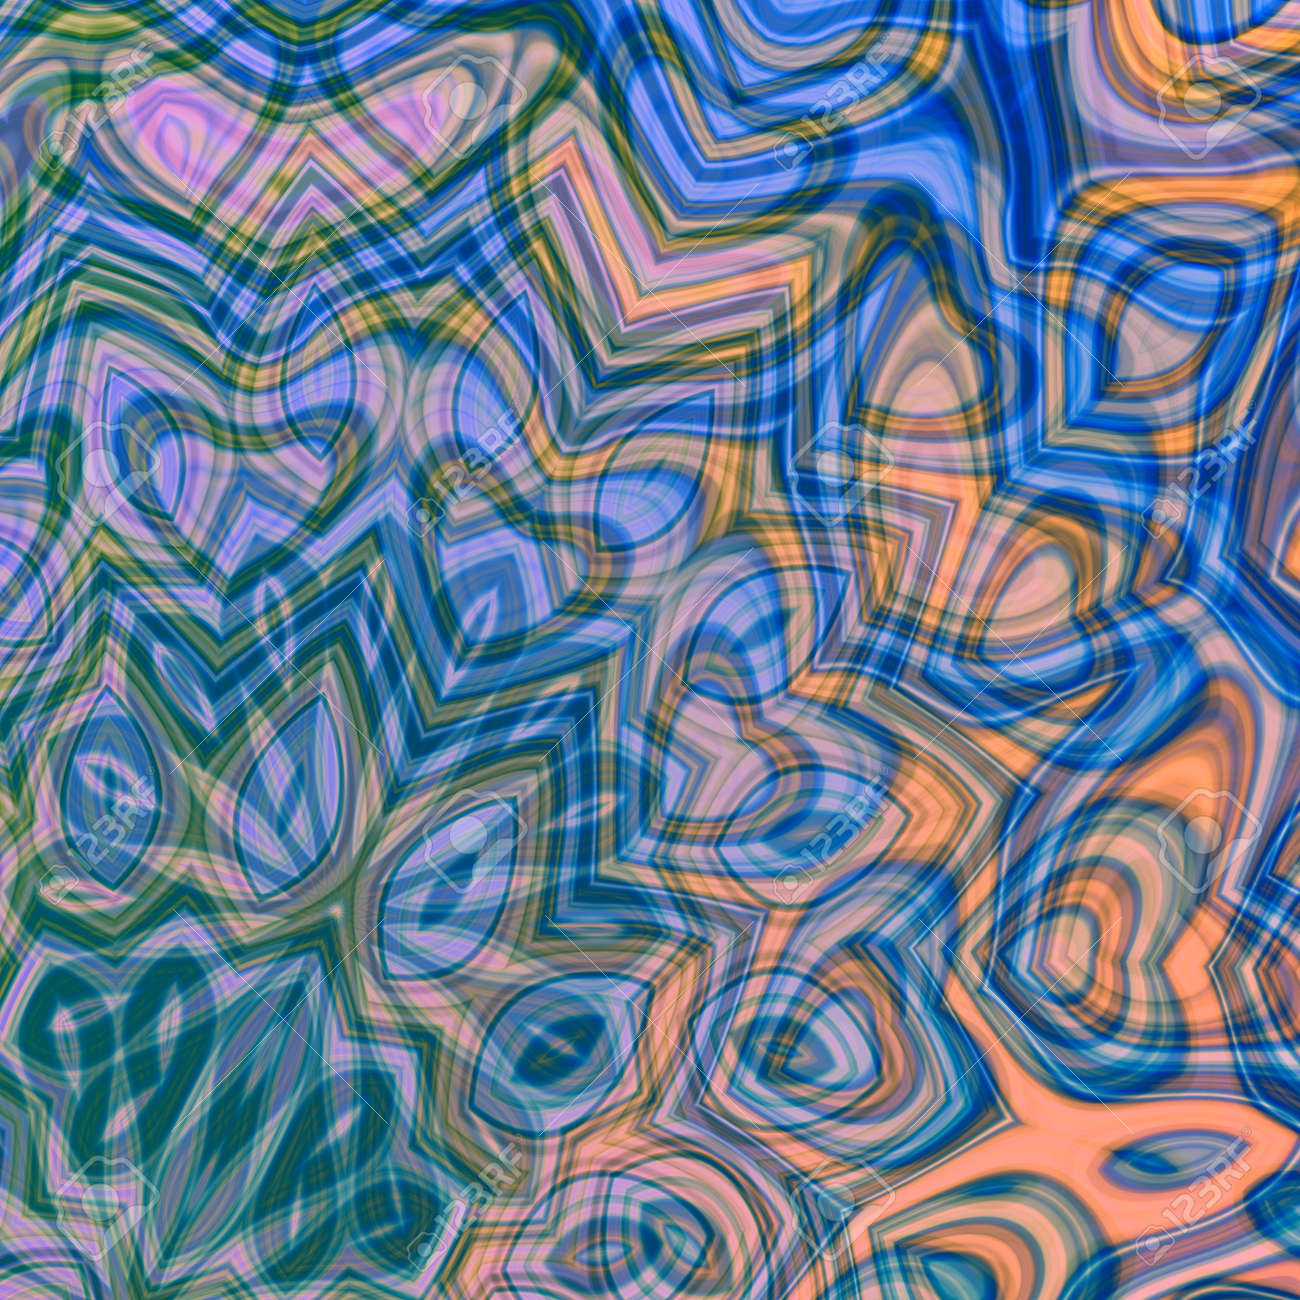 Psychedelic Colorful Art Background Illustration. Computer ...